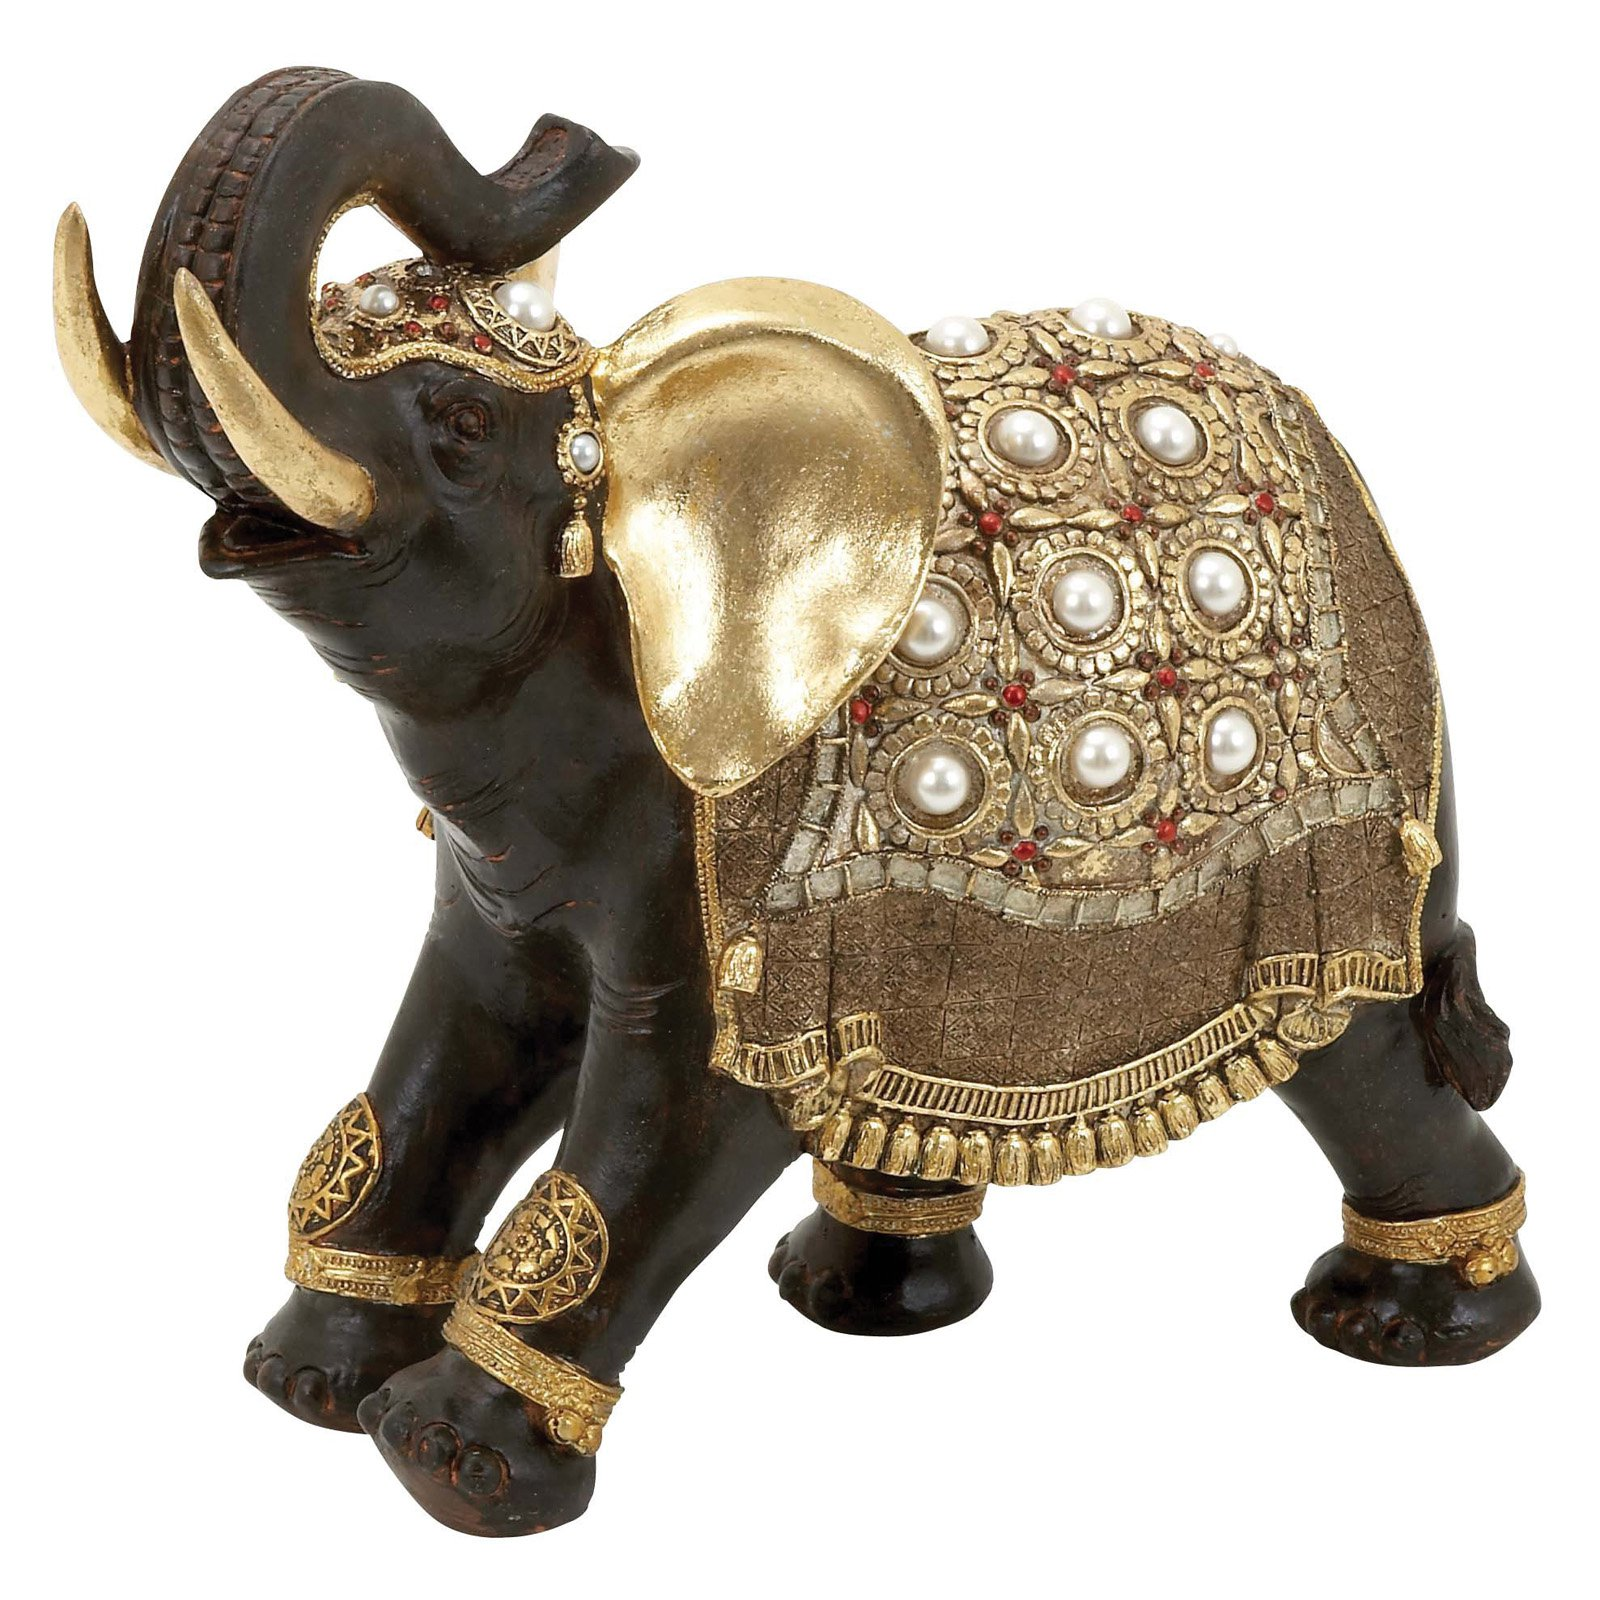 Majestic Small Asian Elephant Statue Ornate Blankets Accent Decor 69477